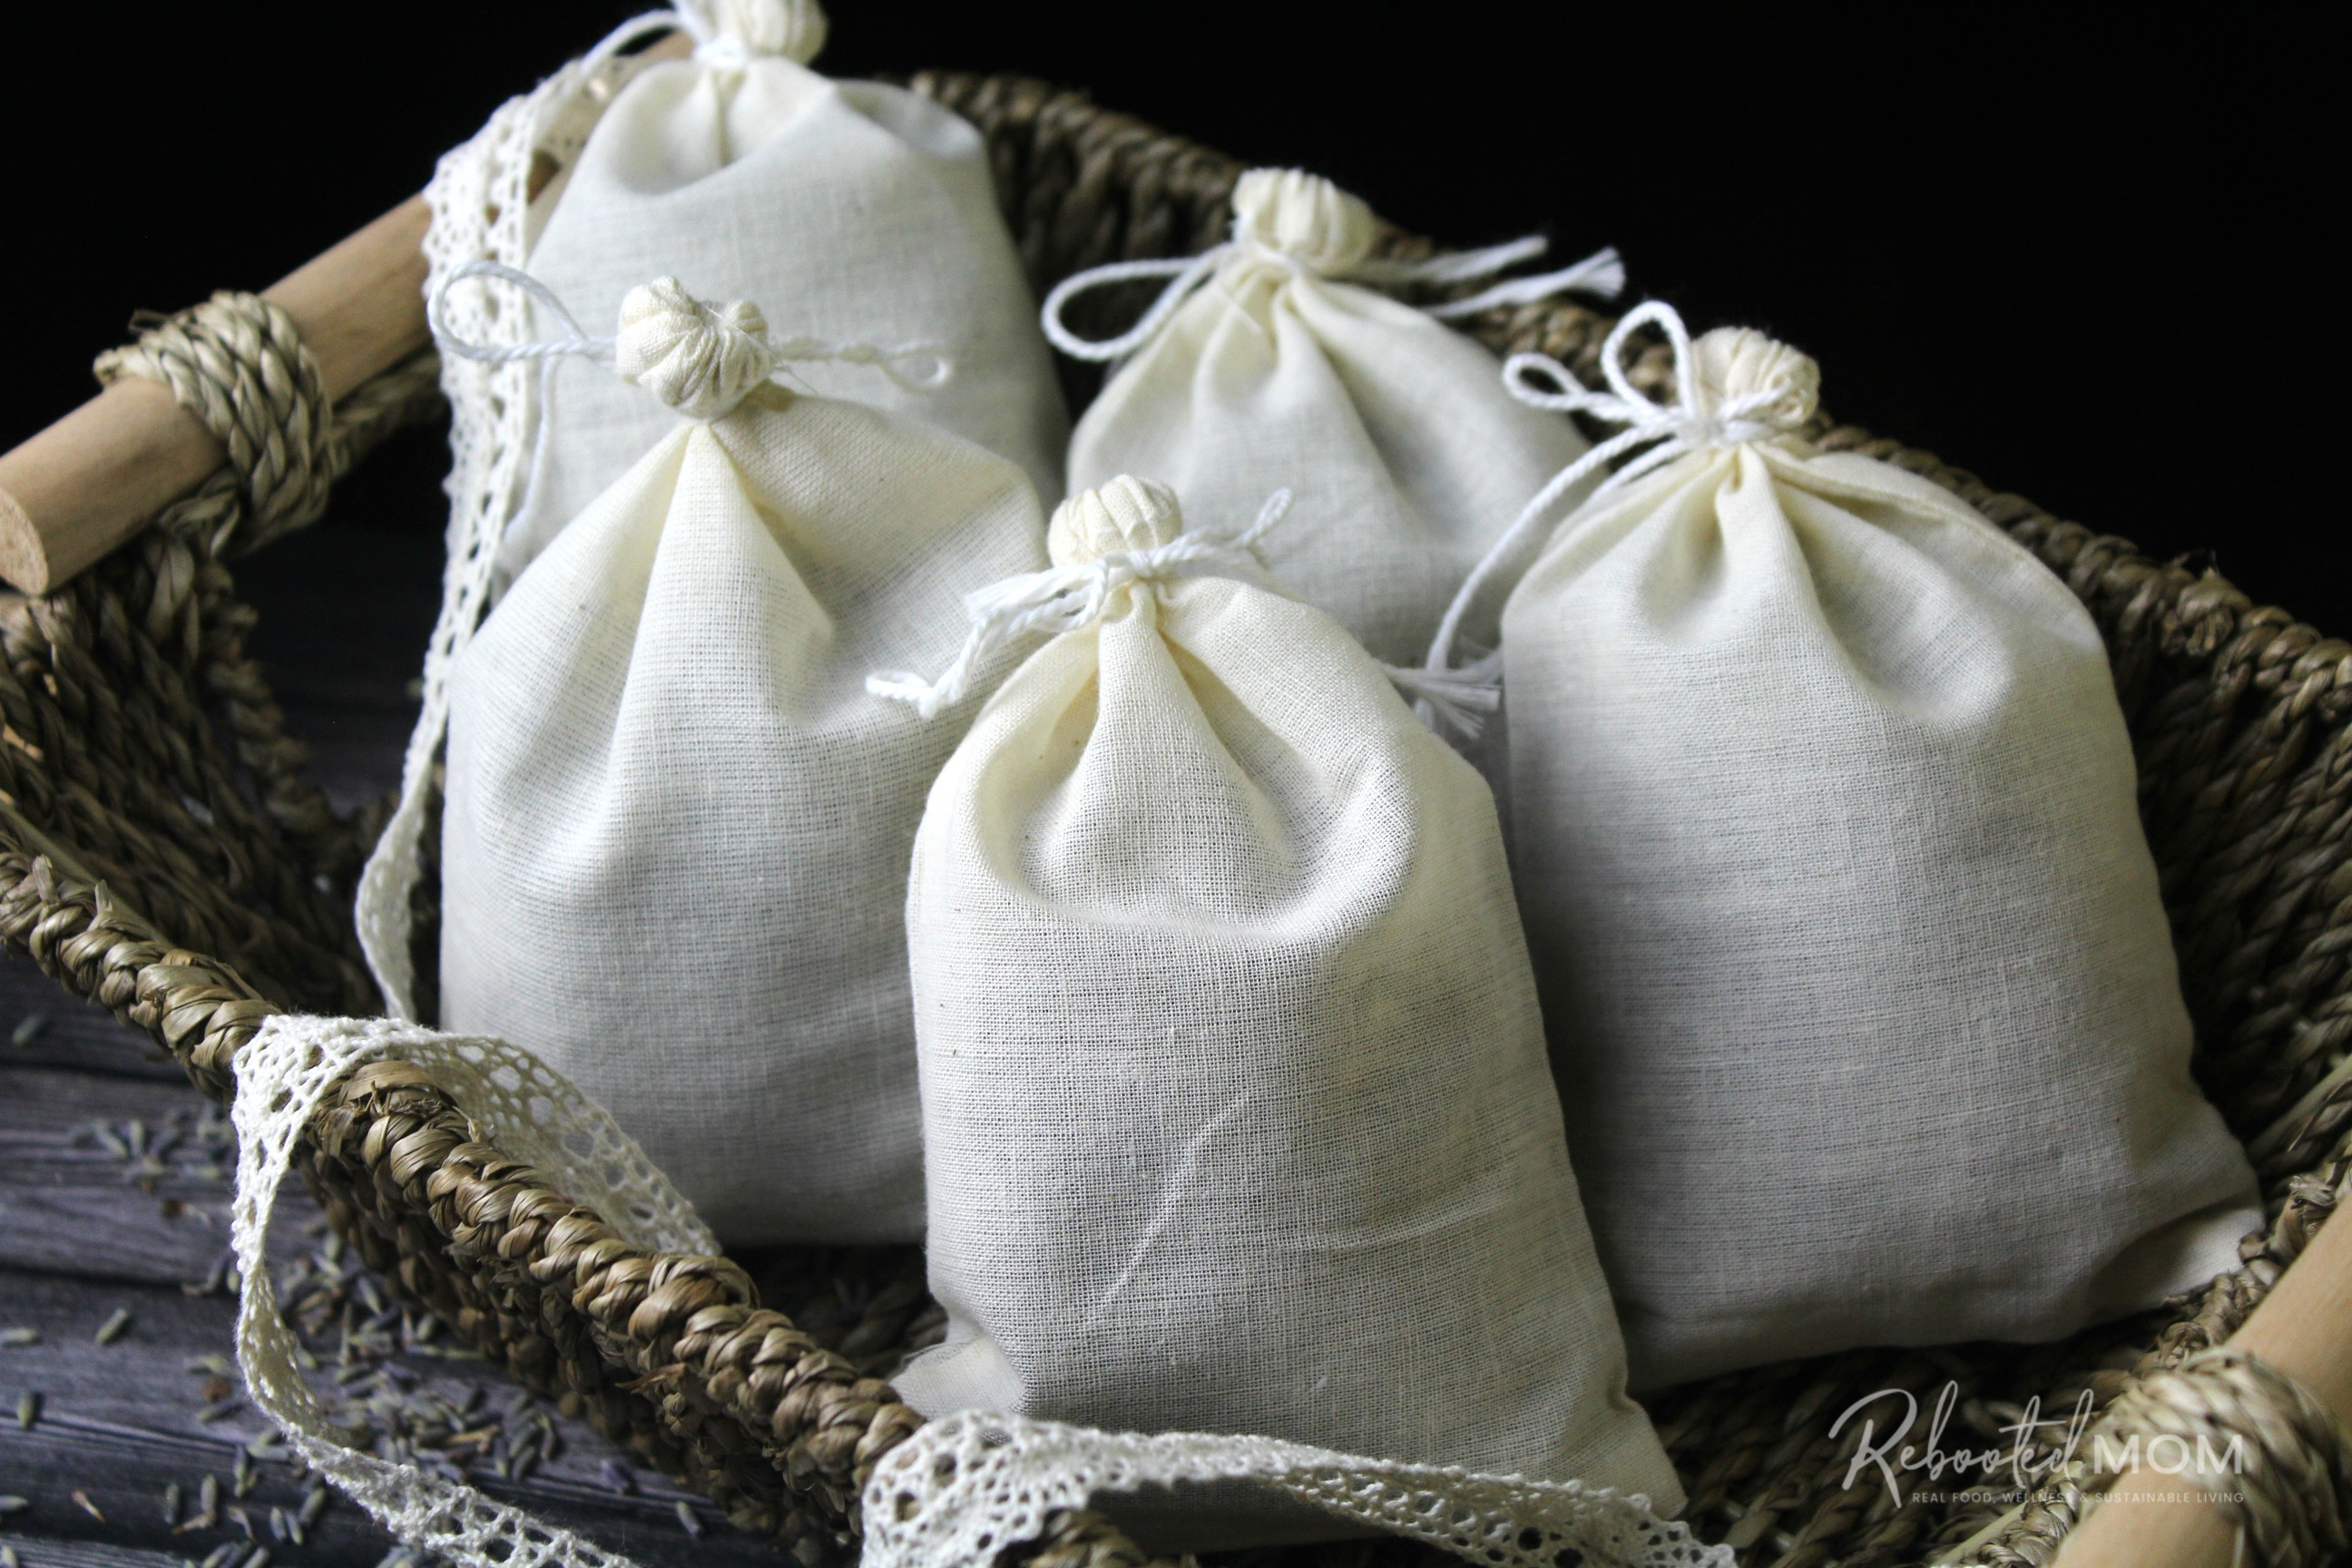 Unlabeled muslin bags filled with herbs, sitting in a basket. \\ These herbal dryer sachets are a beautiful and healthy way to scent your laundry and they make wonderful gifts for friends, co-workers and even teachers!